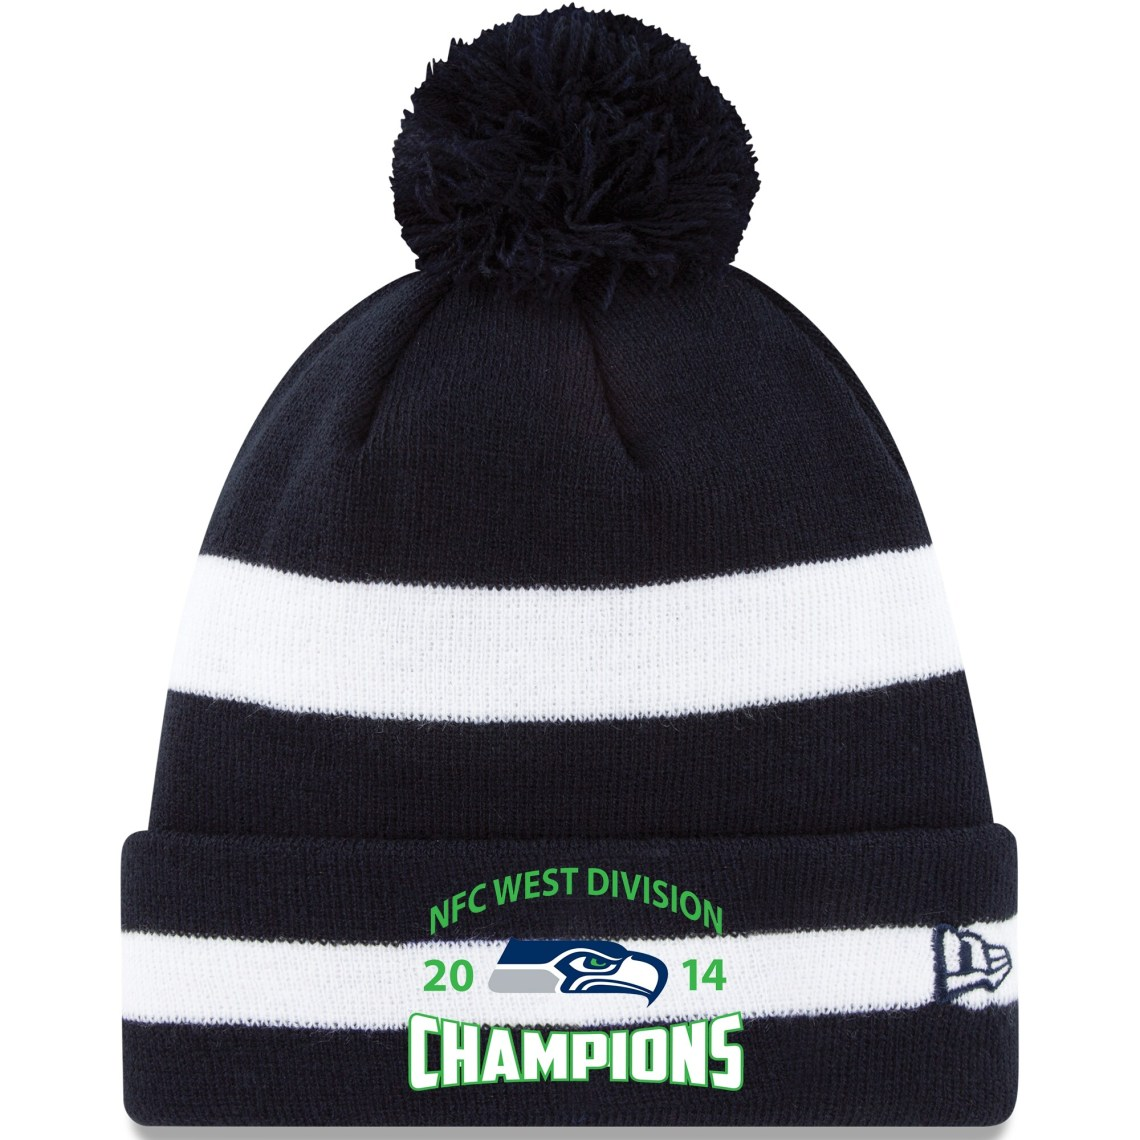 Seattle Seahawks New Era 2014 NFC West Division Champions Cuffed Knit Hat - College Navy